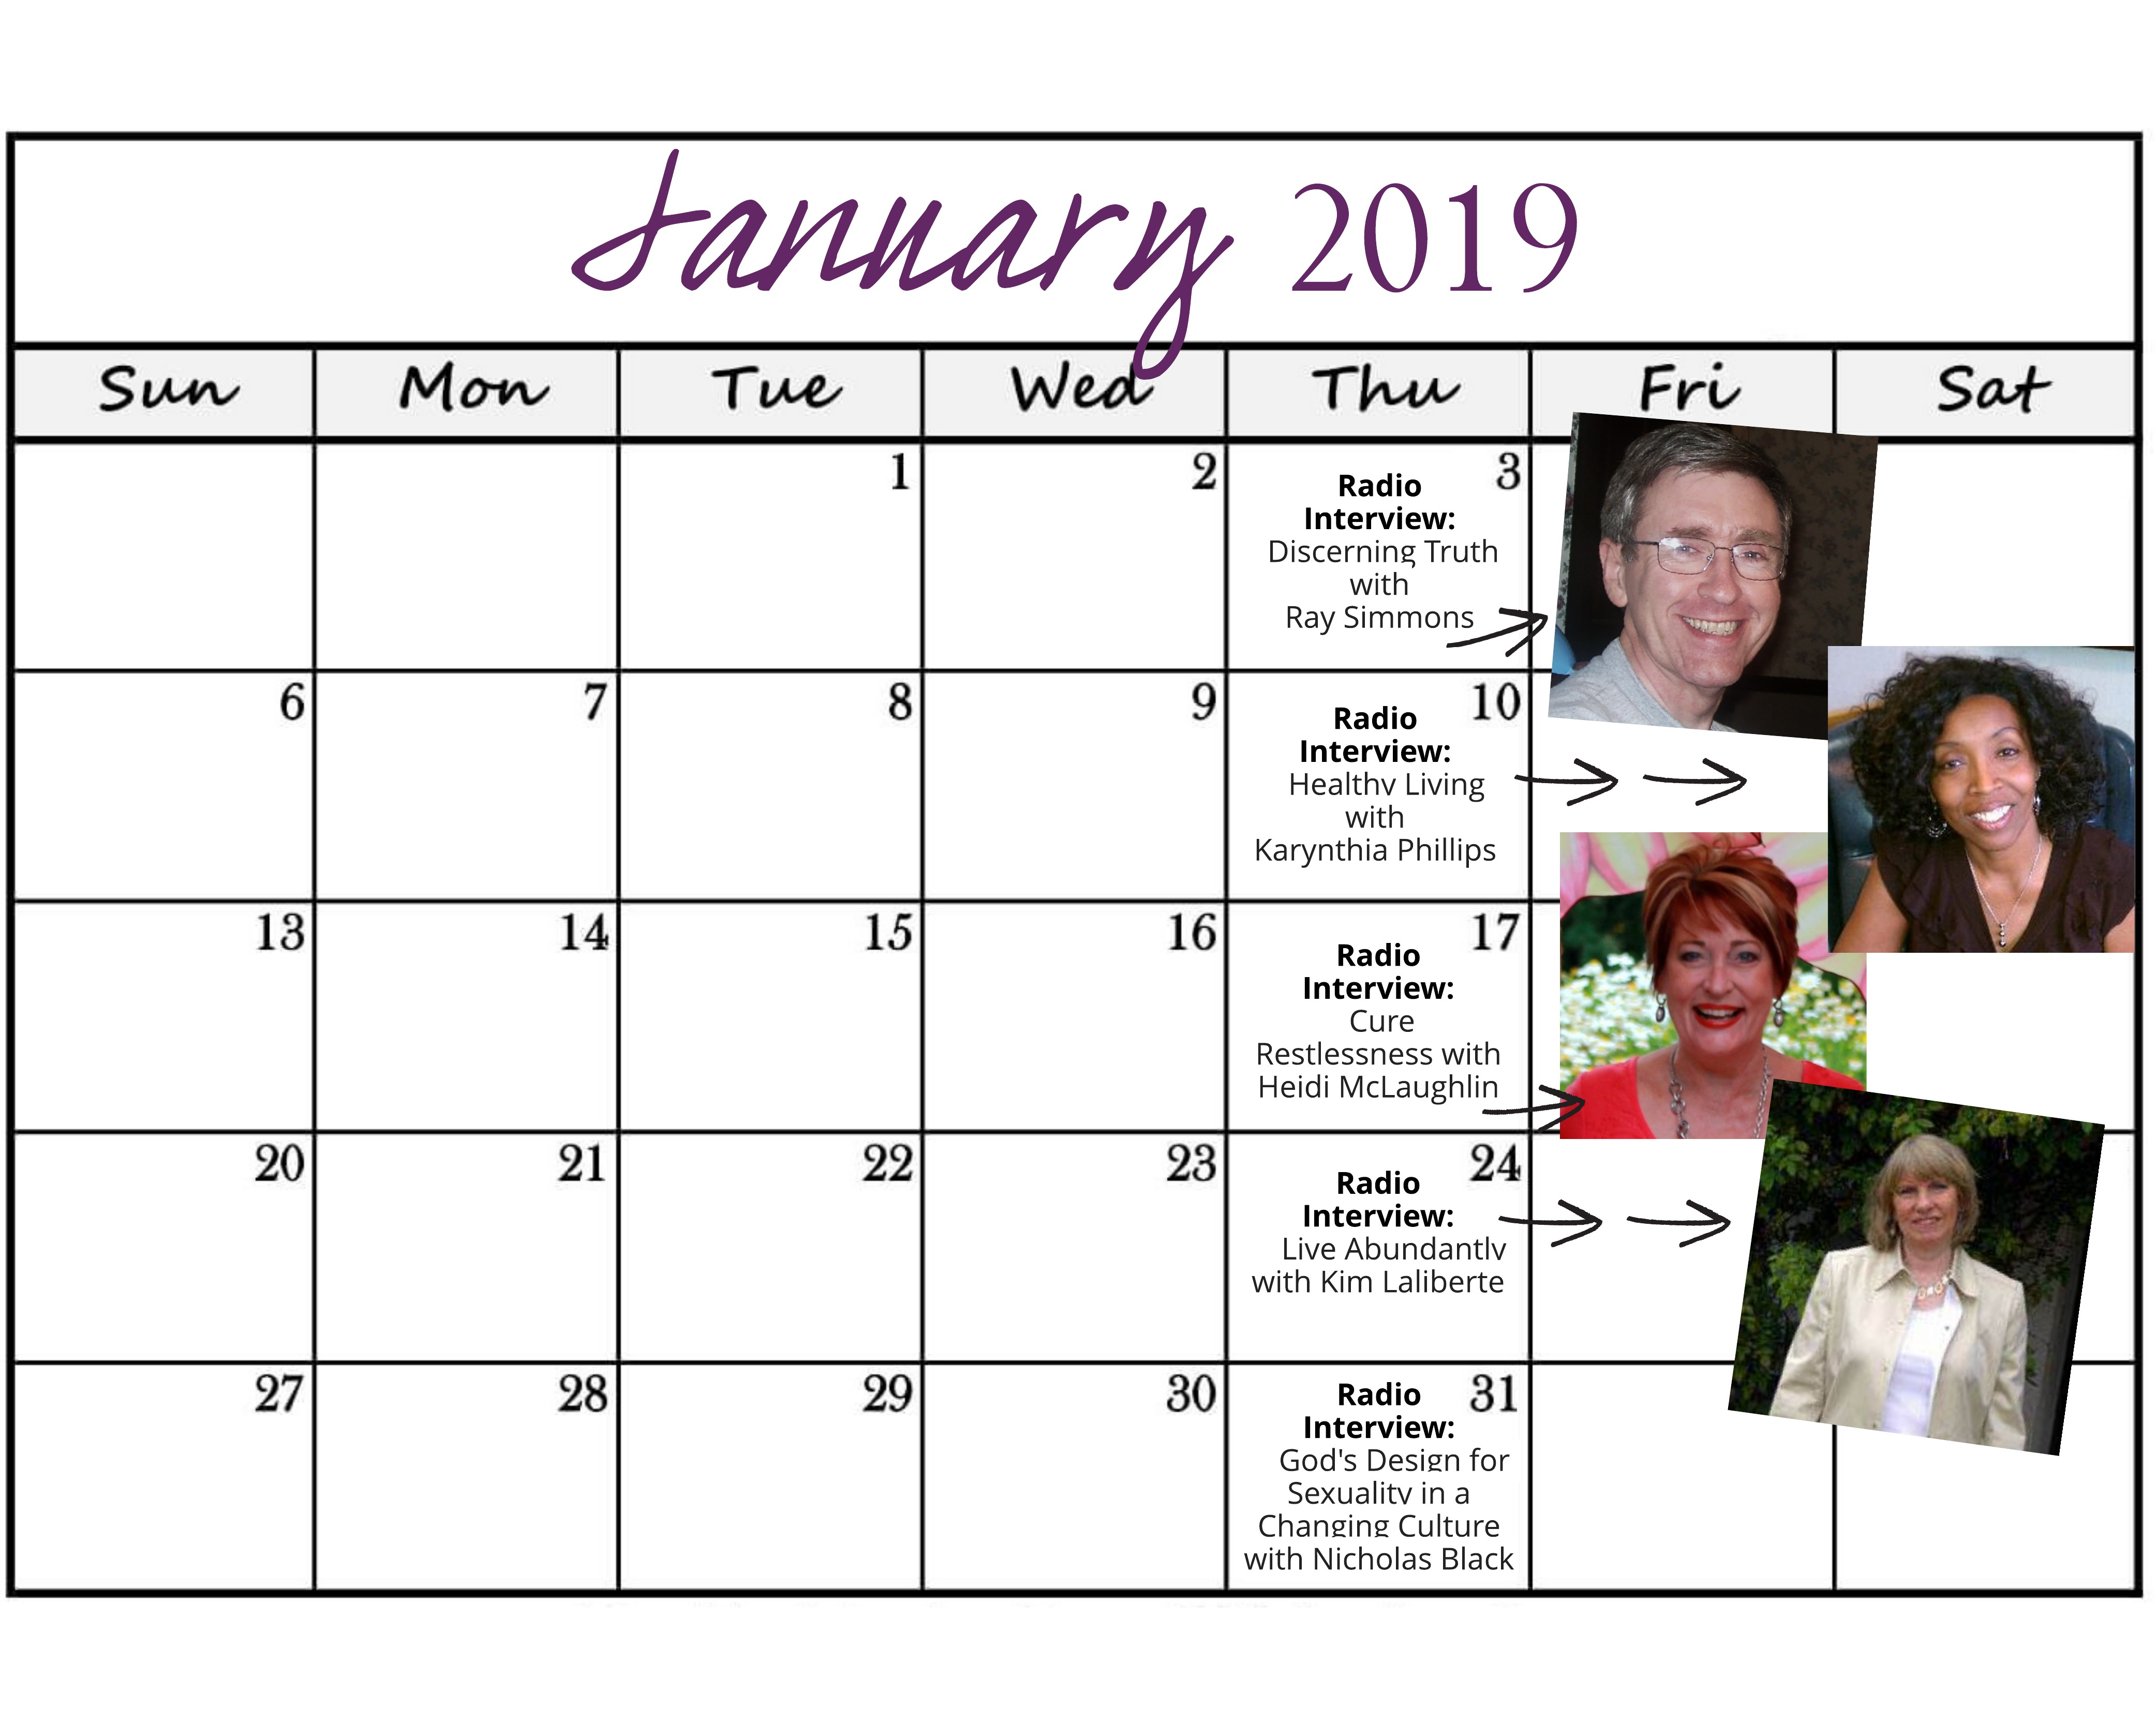 January 2019 Heart of the Matter Radio Schedule - Cynthia L. Simmons